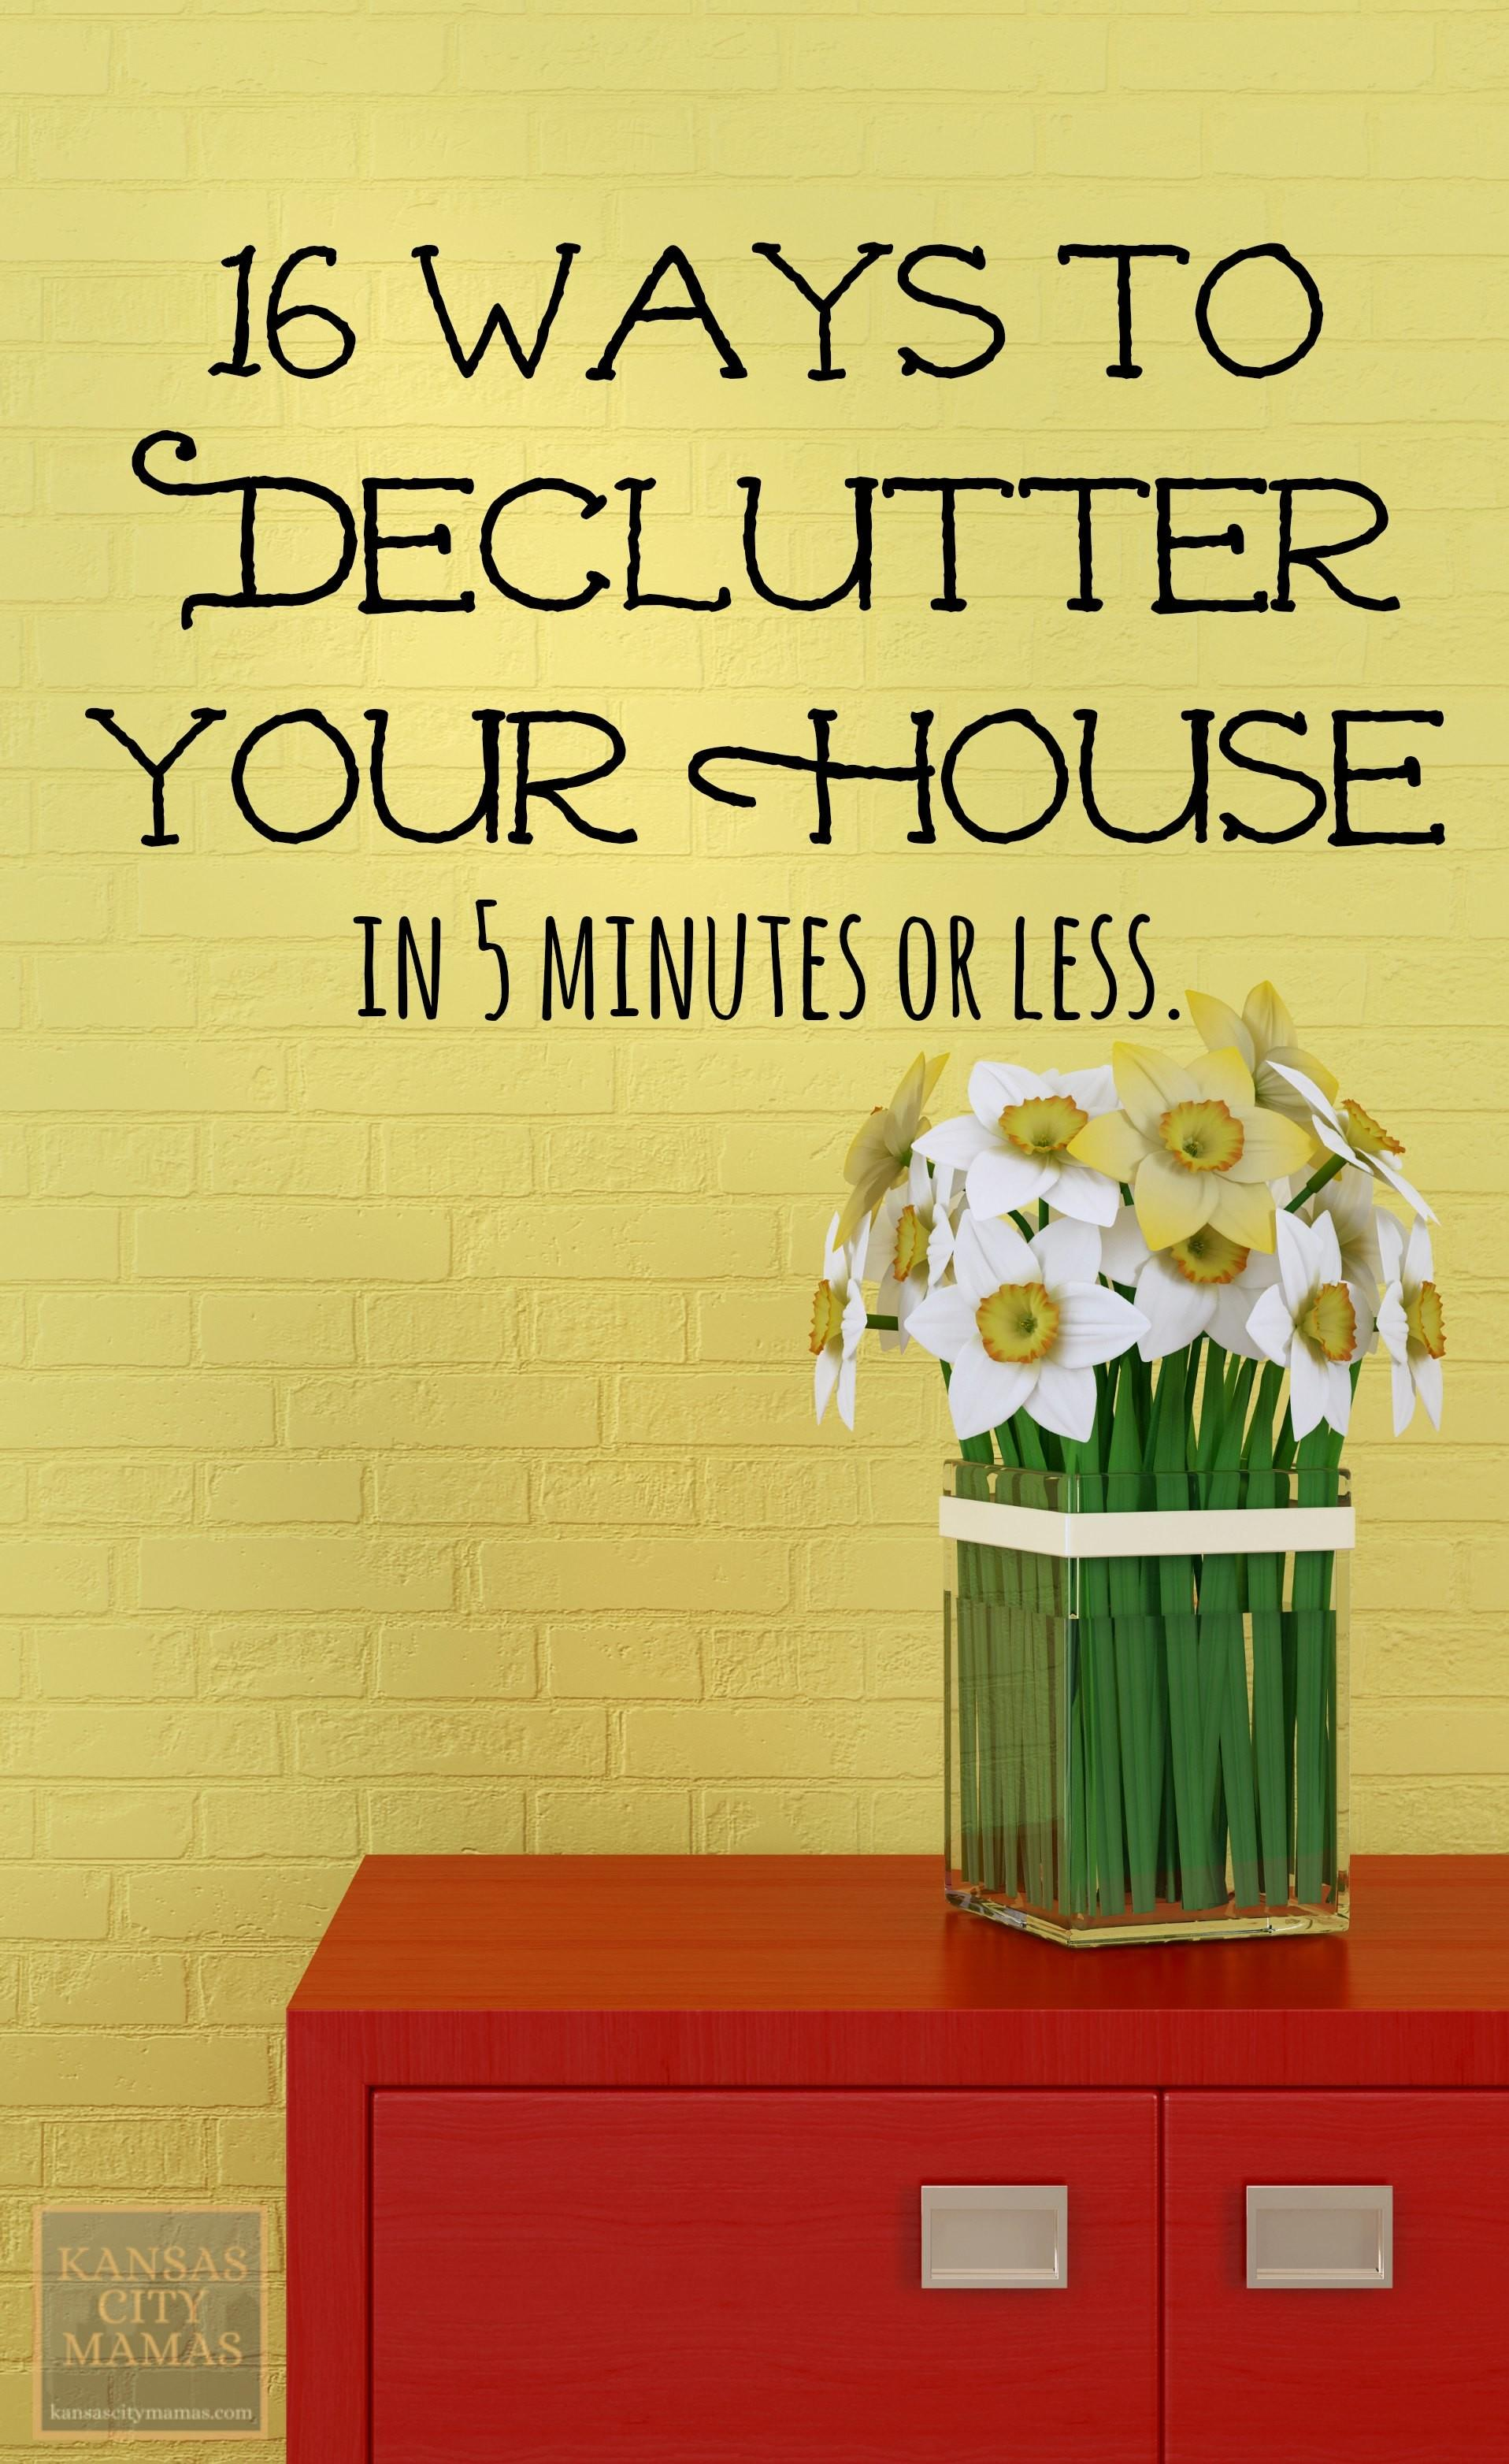 Declutter Your House Five Minutes Easy Ways